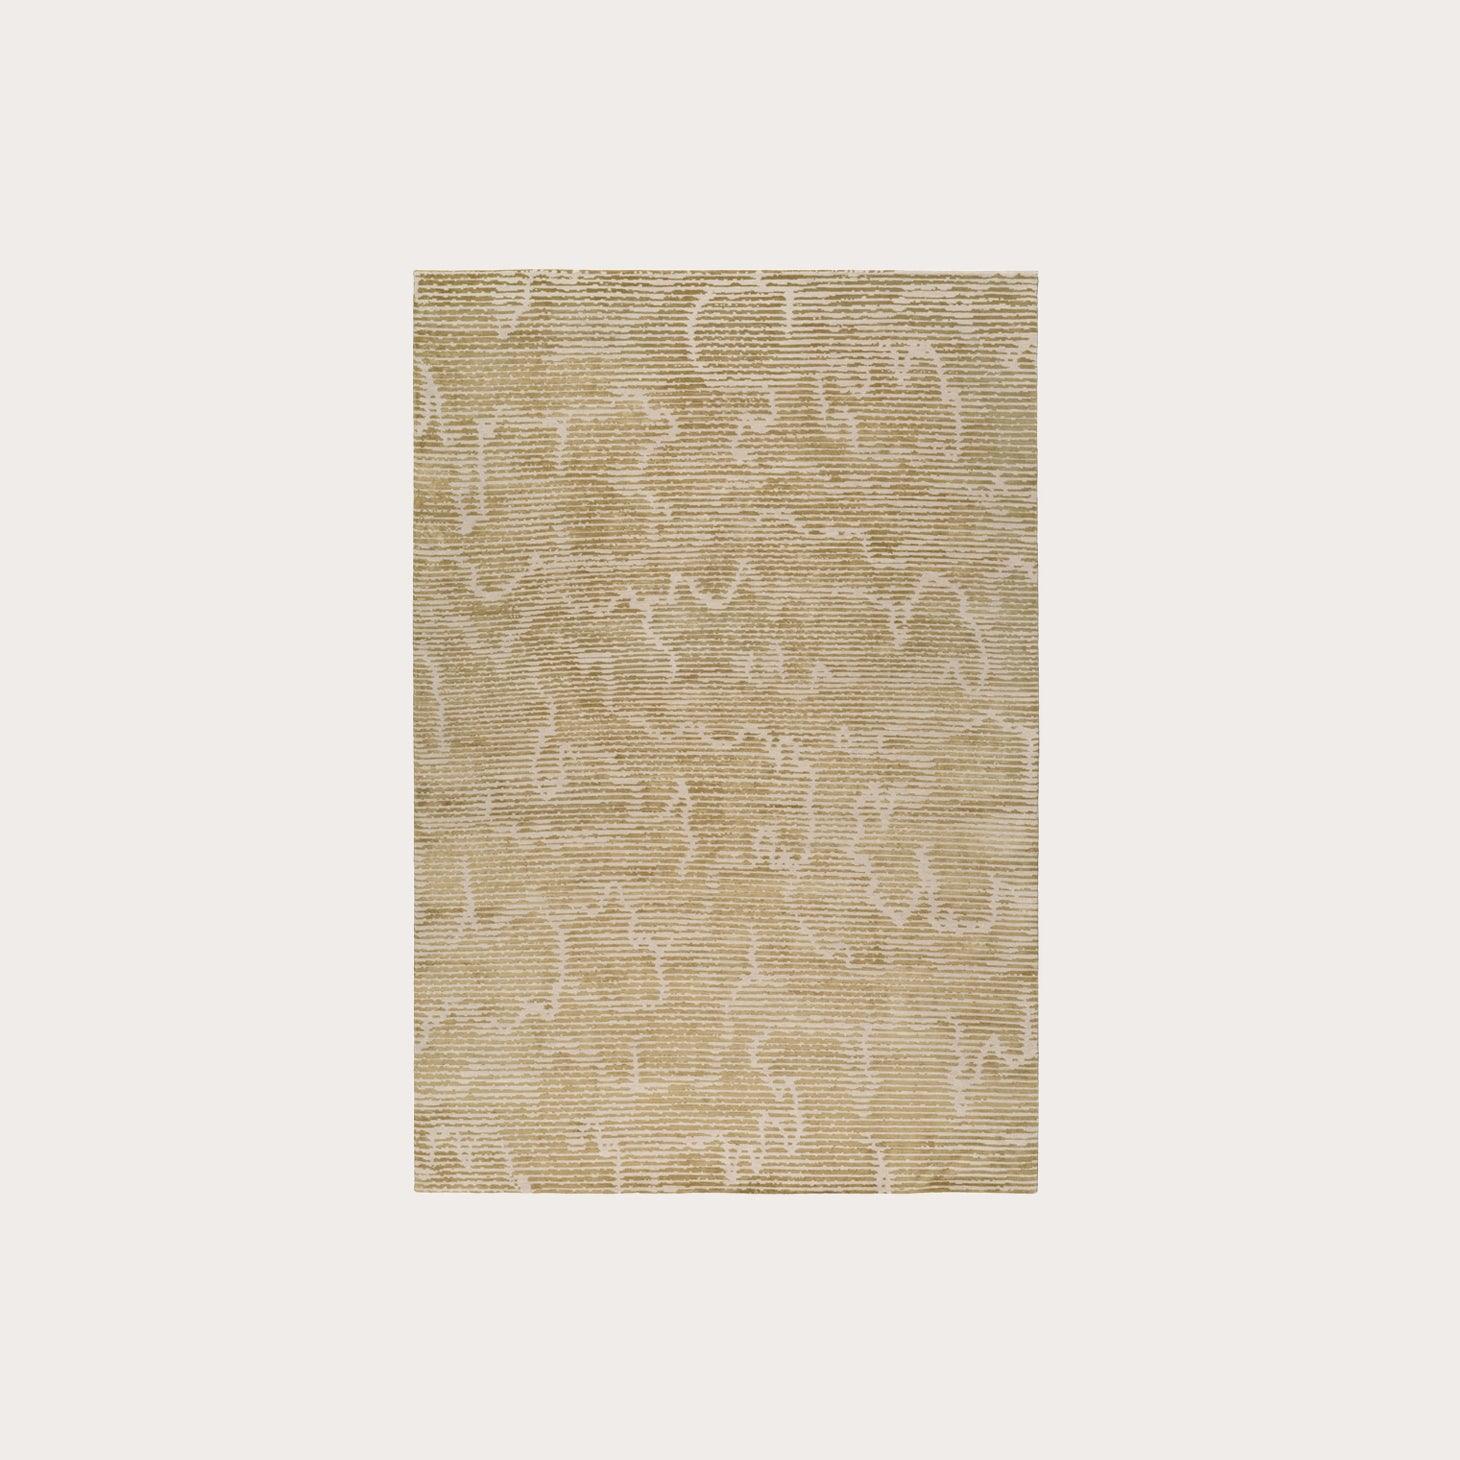 Staccato Floor Coverings Kelly Wearstler Designer Furniture Sku: 391-150-11268